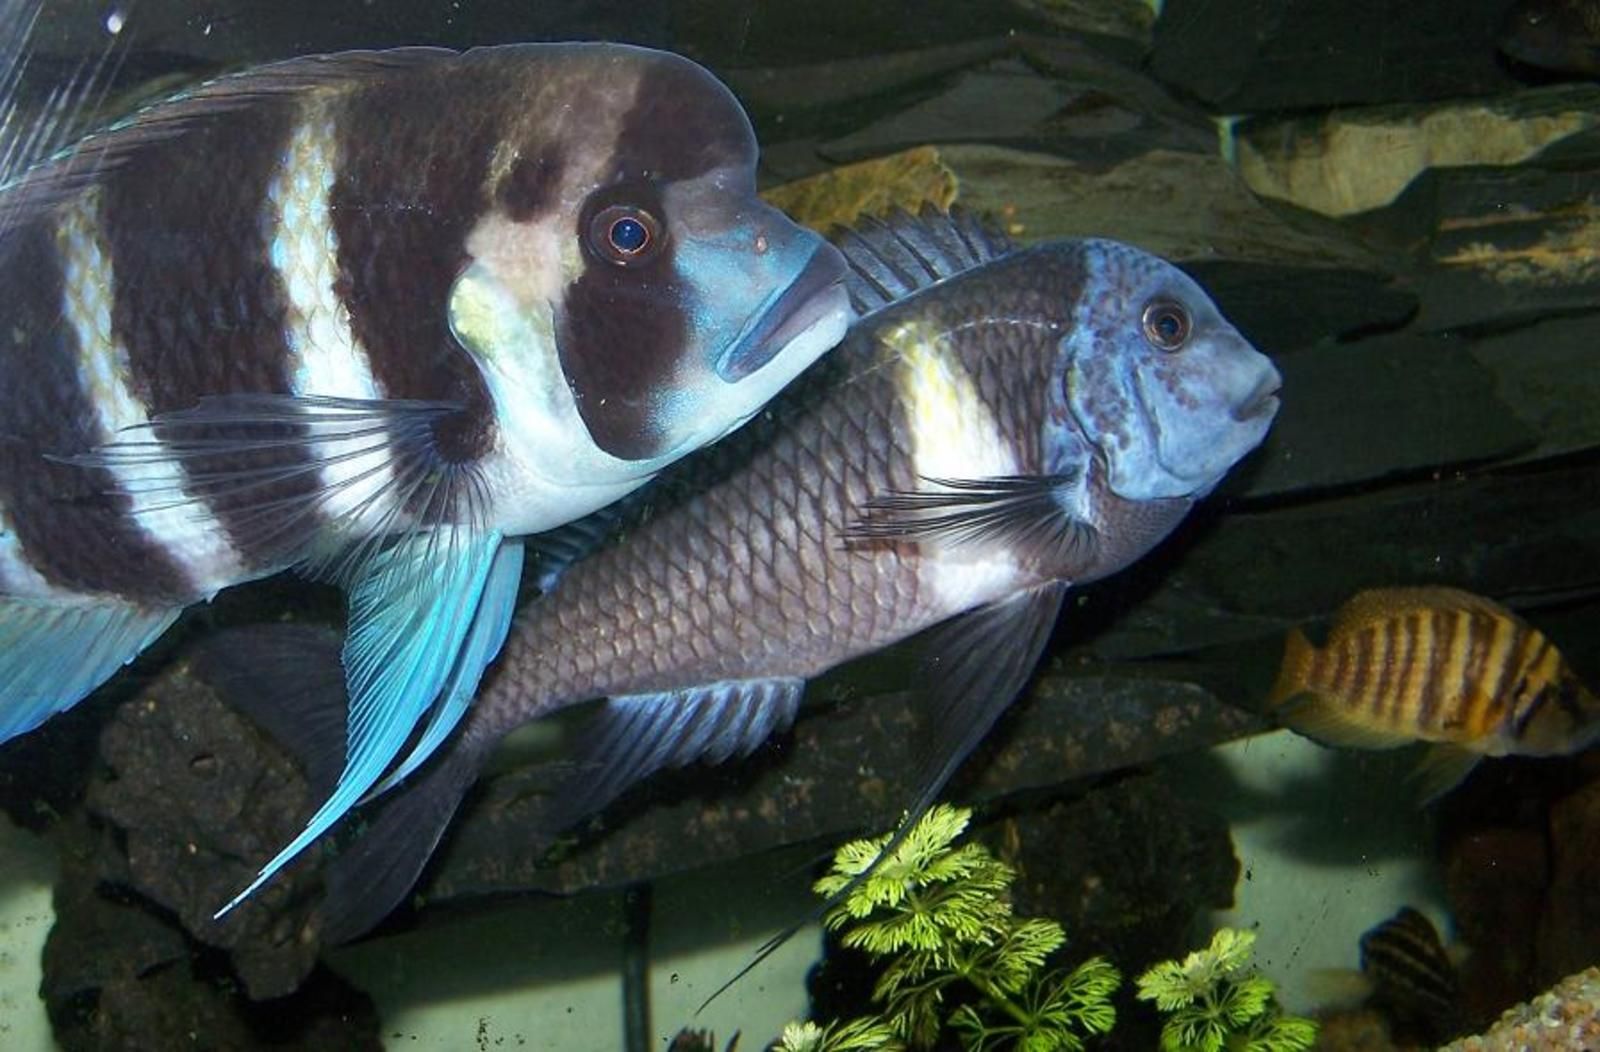 Tropheus Duboisi and Cyphotilapia Frontosa | by todd johnson